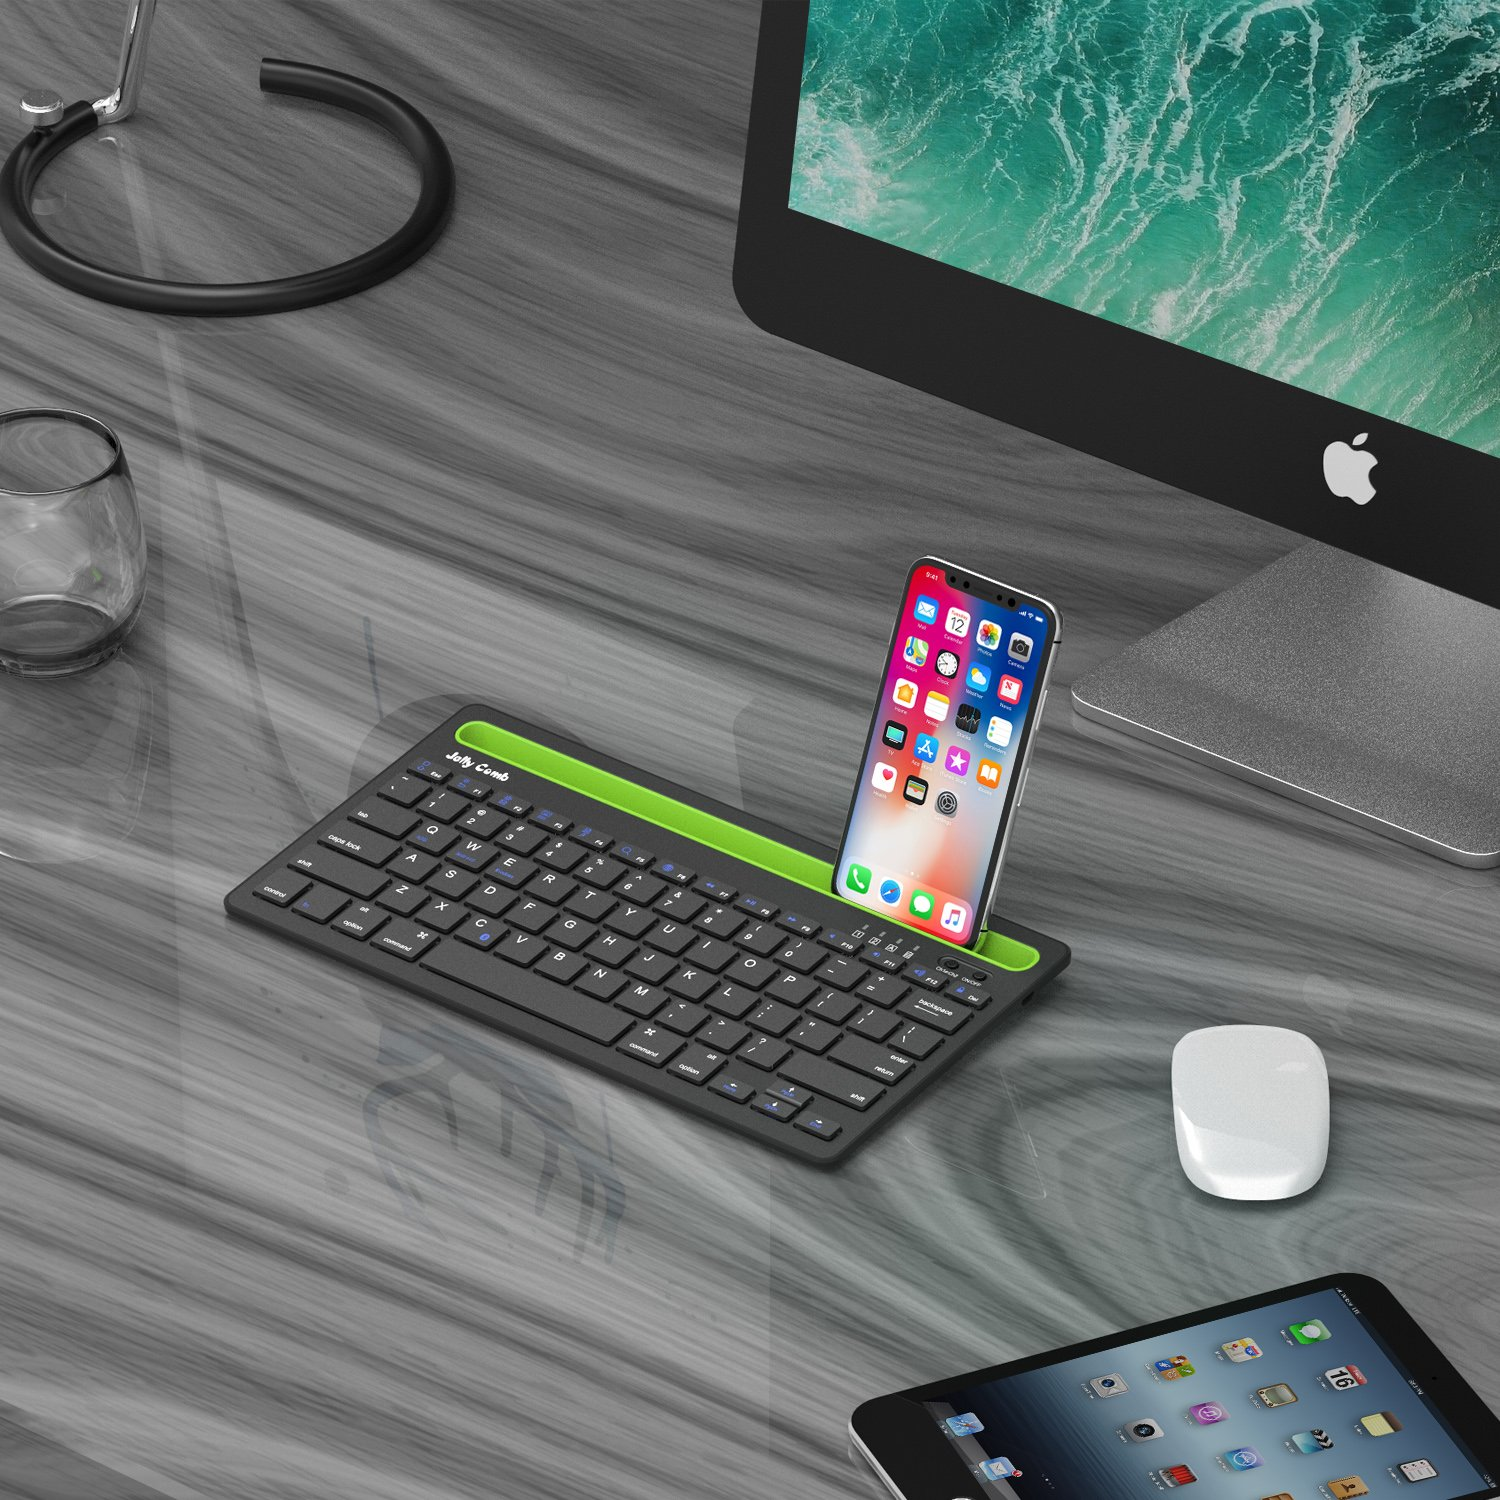 Bluetooth keyboard, Jelly Comb BK230 Dual Channel Multi-device Universal Wireless Bluetooth Keyboard Rechargeable with Sturdy Stand for Tablet Smartphone PC Windows Android iOS Mac (Black and Green) by Jelly Comb (Image #7)